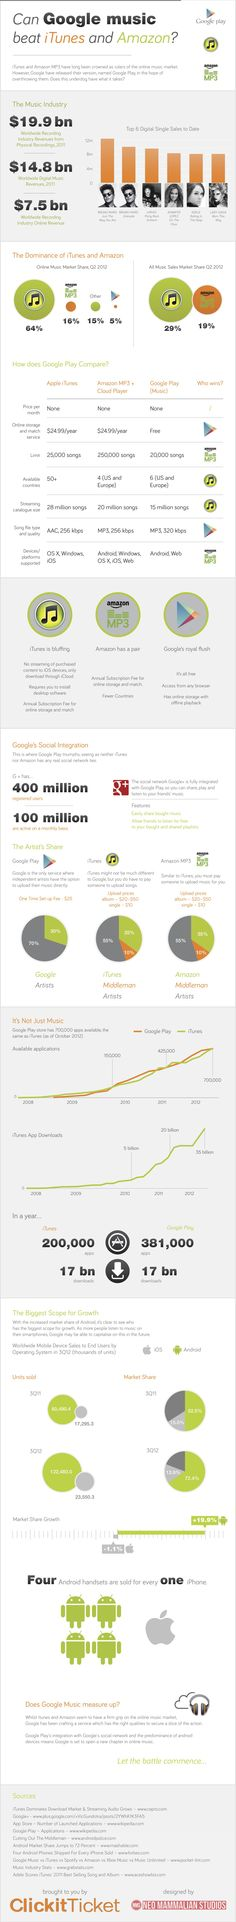 Can #Google Play beat #iTunes and #Amazon? Infographic